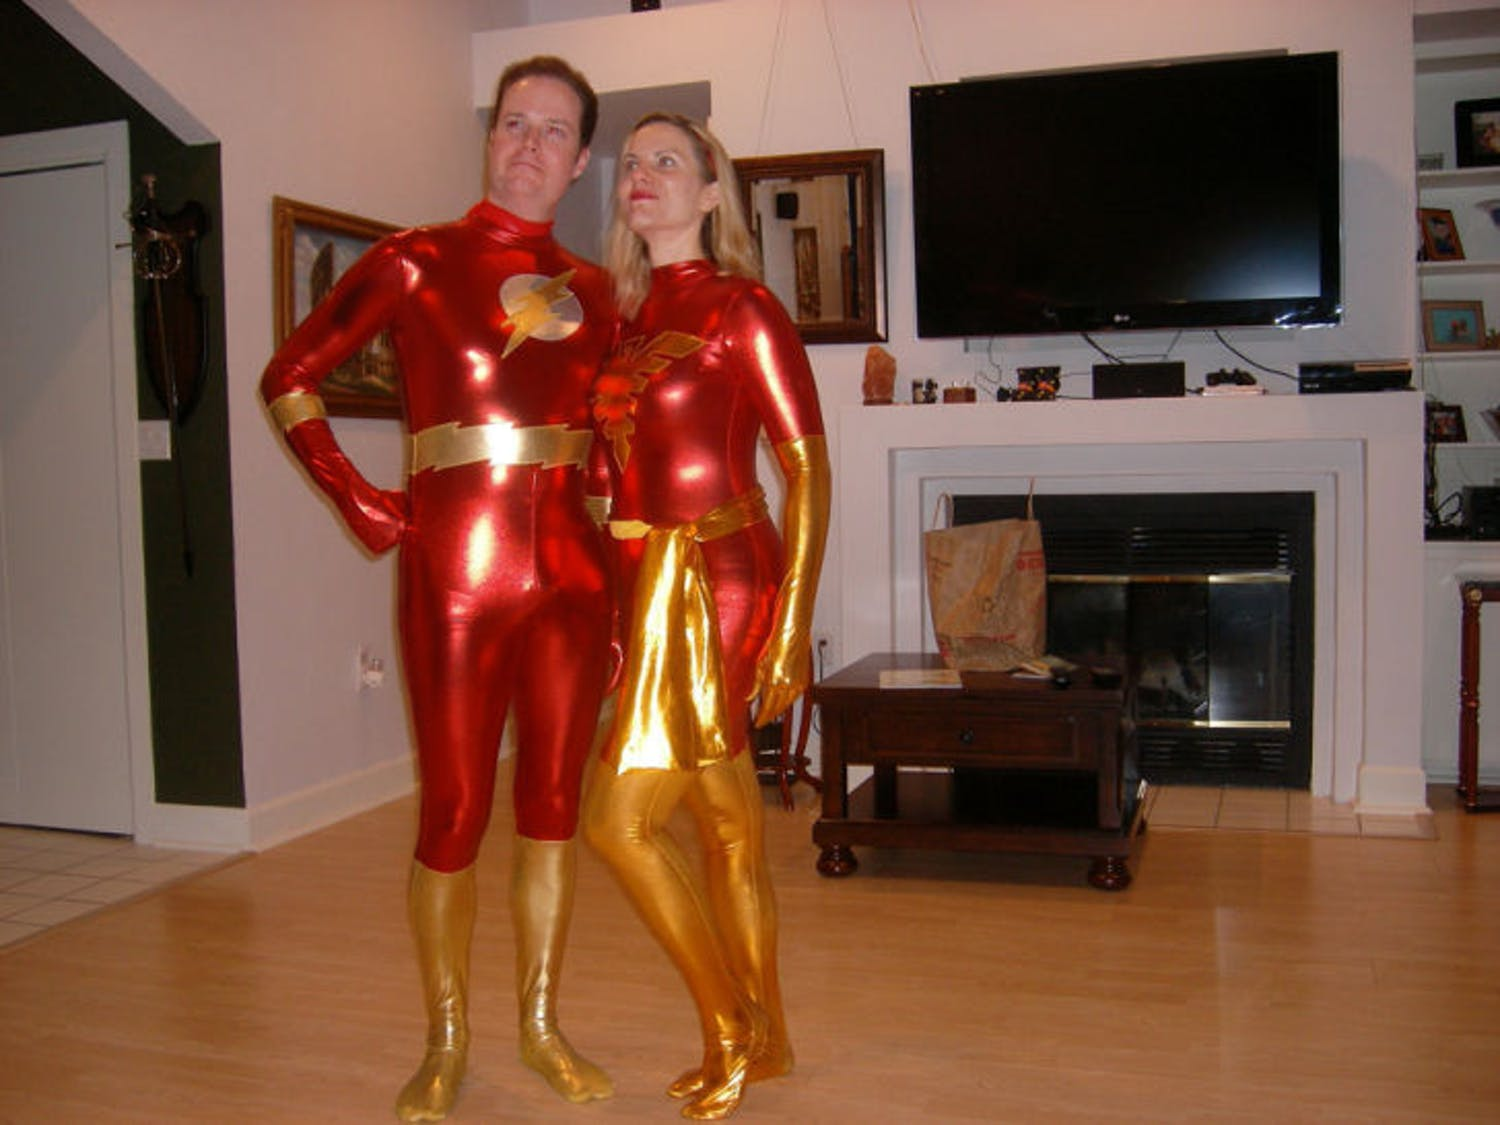 Congressional candidate Jake Rush and his wife, Anne, pose in live action role-playing outfits.